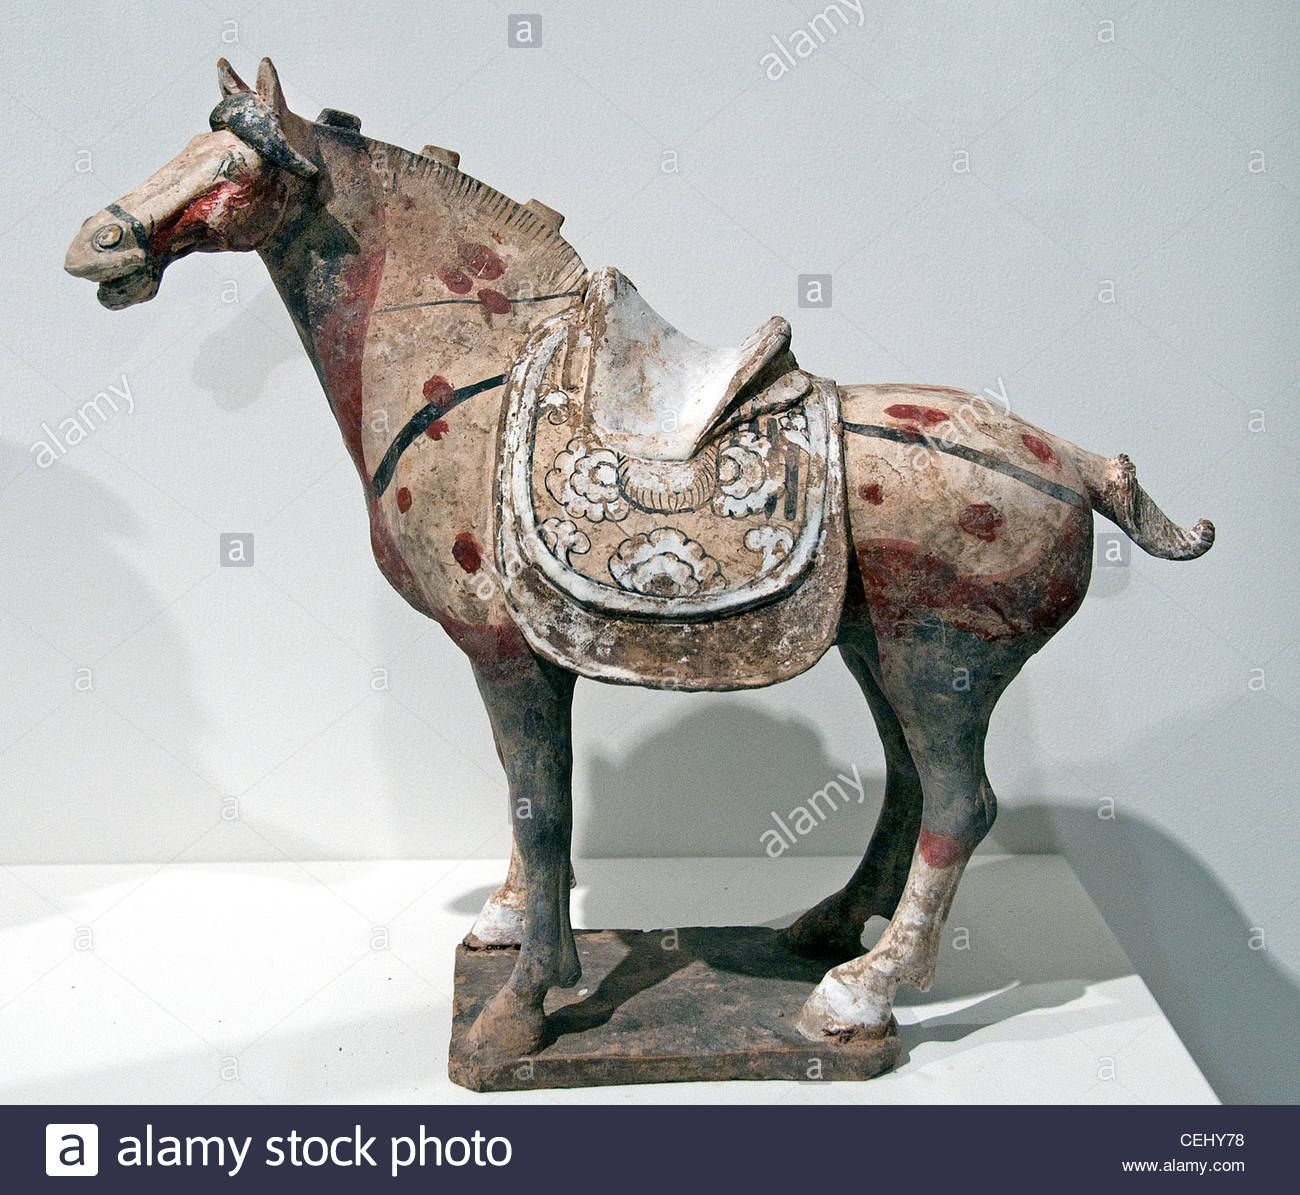 Download This Stock Image Horse Saddle Polychrome Ceramic Pottery Tang Dynasty 8 Century North China Chinese Cehy78 From Alamy Horses China Art Equine Art